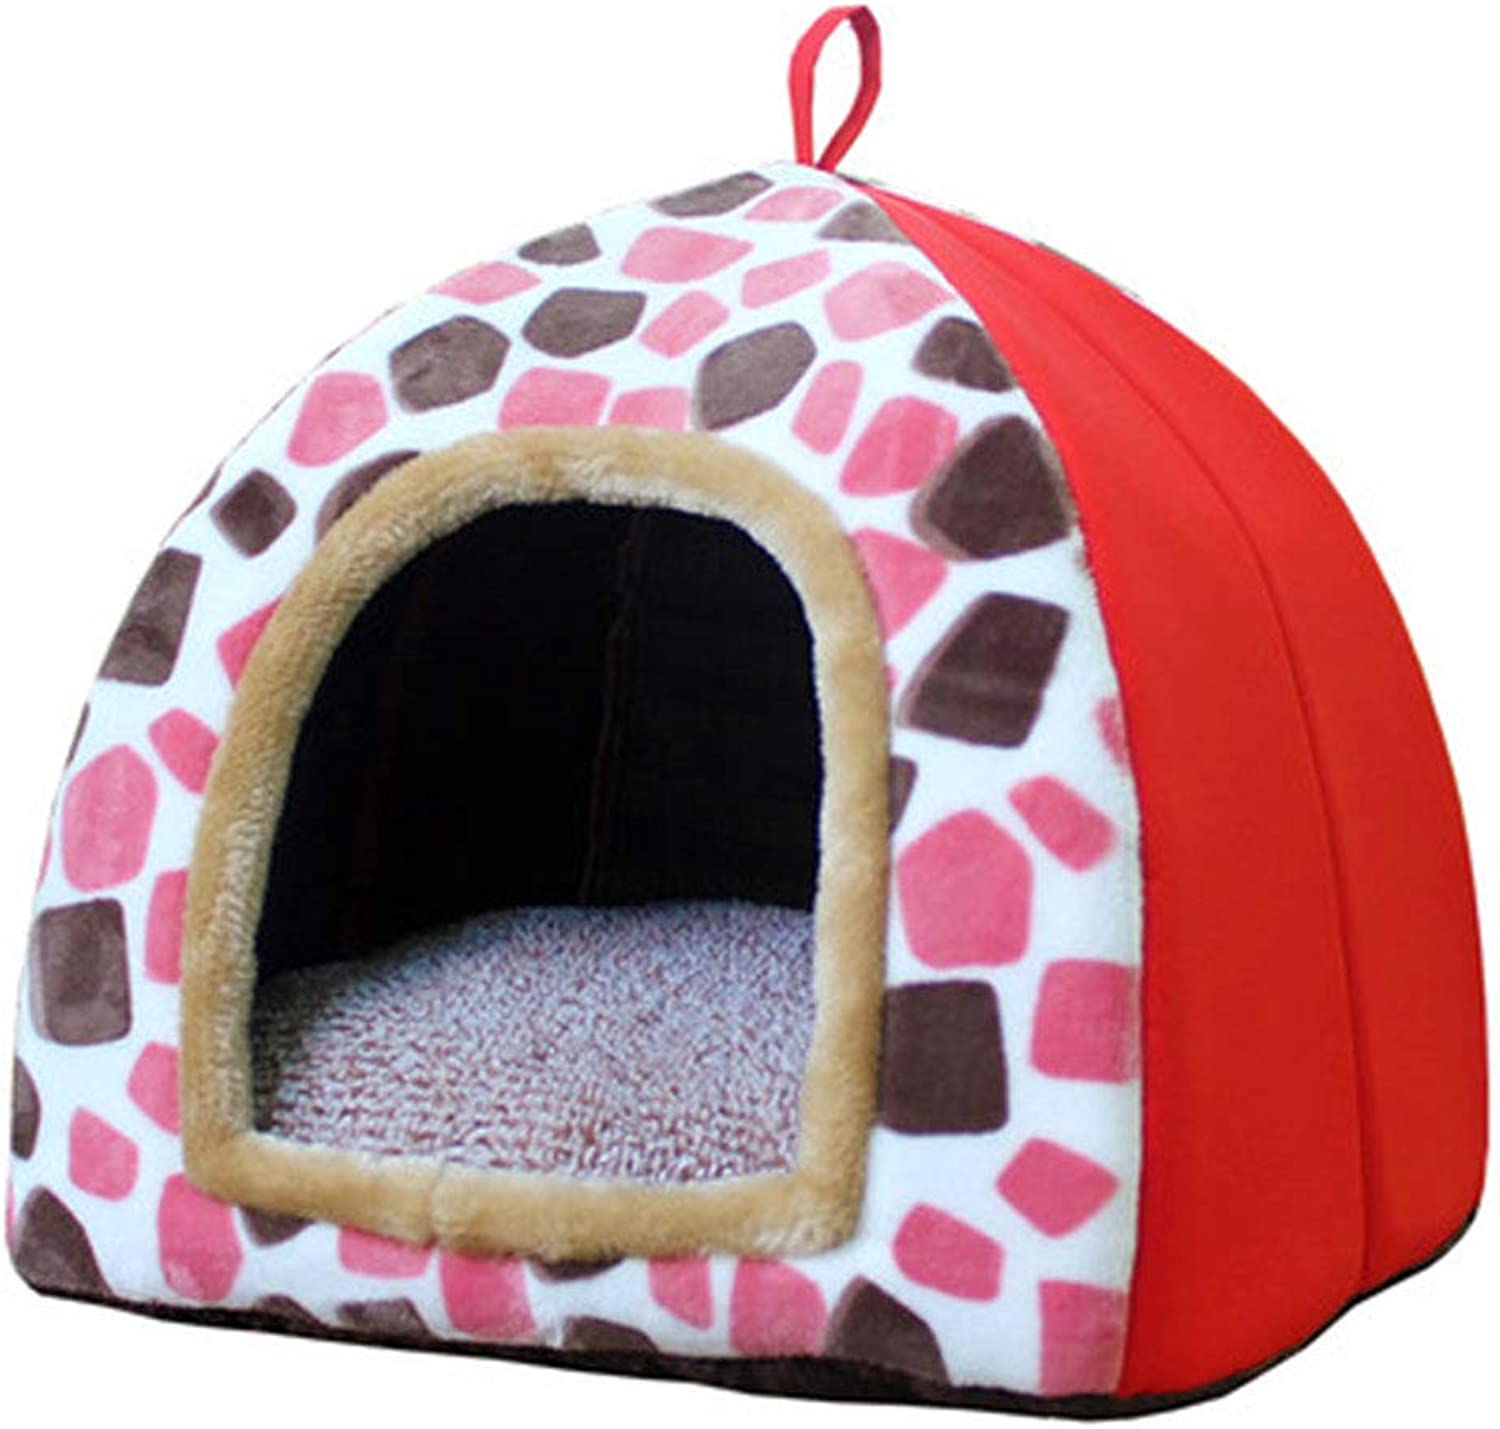 HONGNA Pet dog nest cotton nest cat litter removable and washable cute yurt shape, small and medium pet nest,orange,S